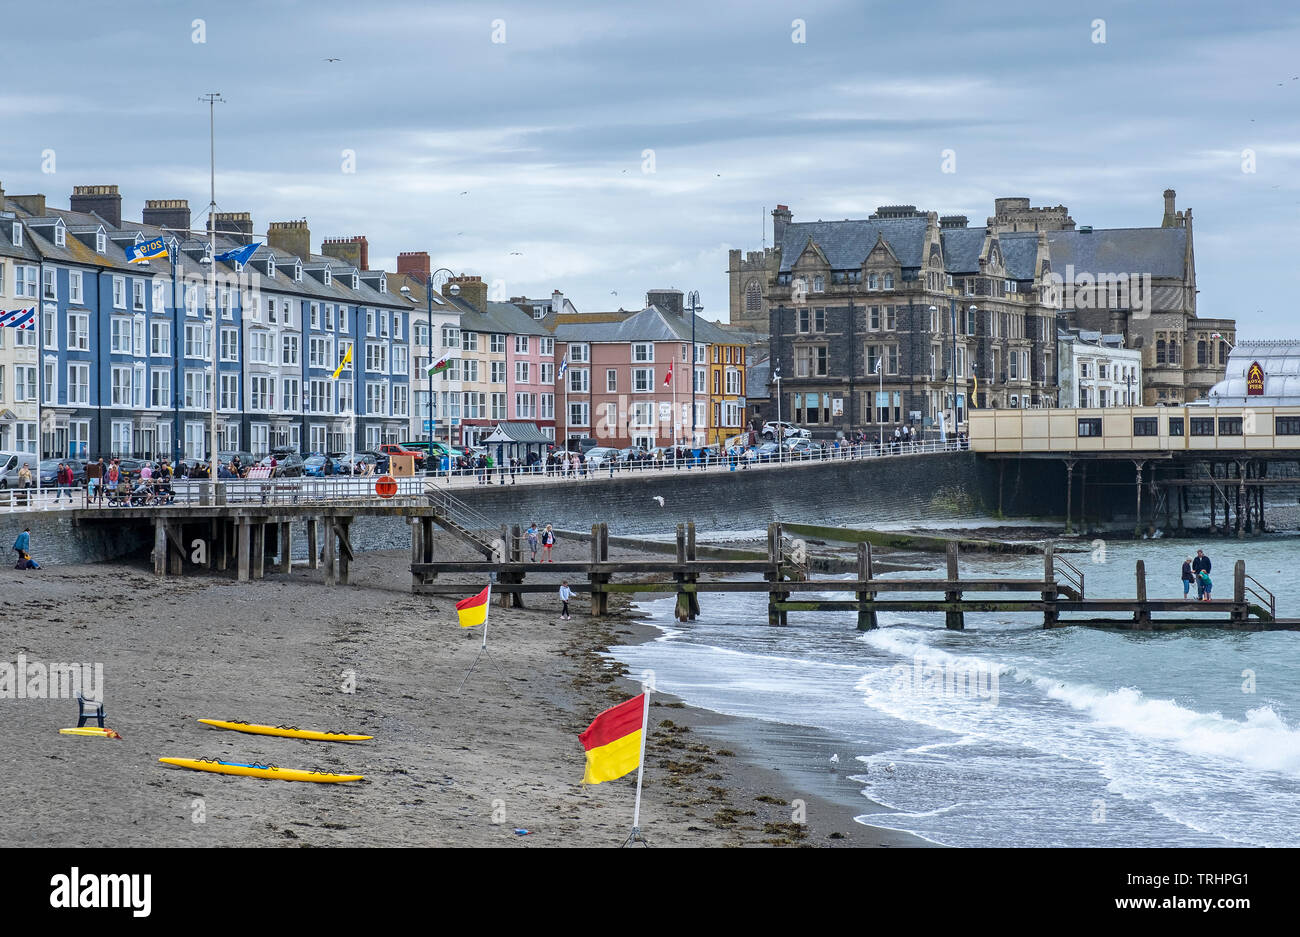 The seafront promenade at Aberystwyth, Wales - Stock Image